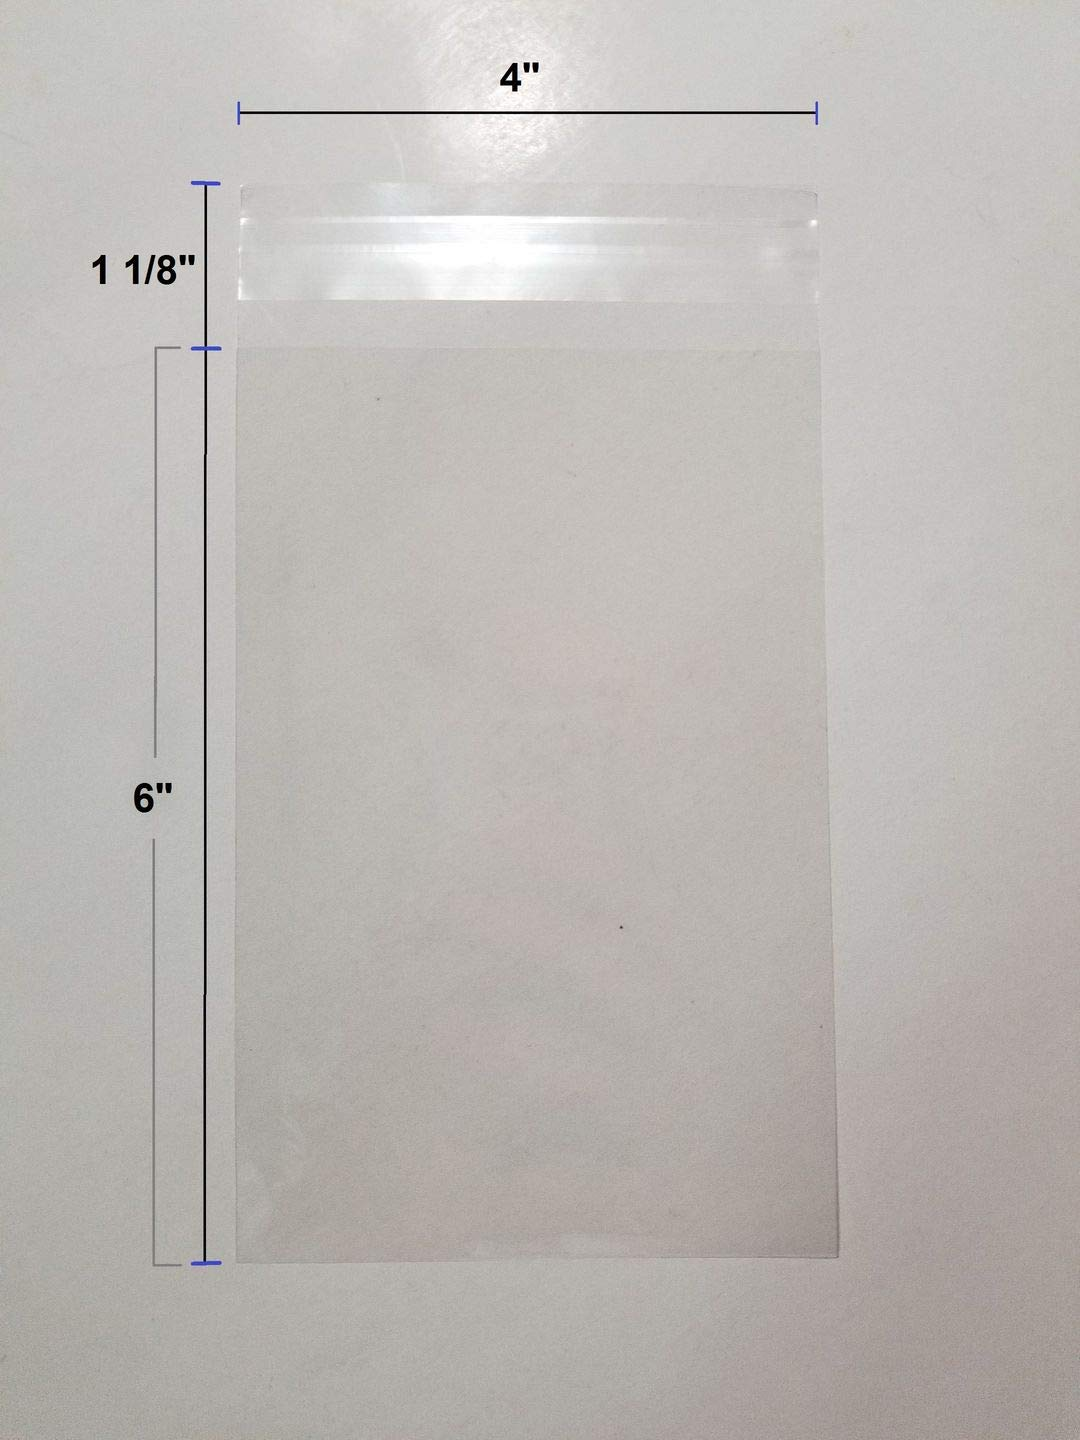 UNIQUEPACKING 100 Pcs 4x6 Inches Clear Resealable Cello Cellophane OPP Bags, 1 Pack / 100 Pieces